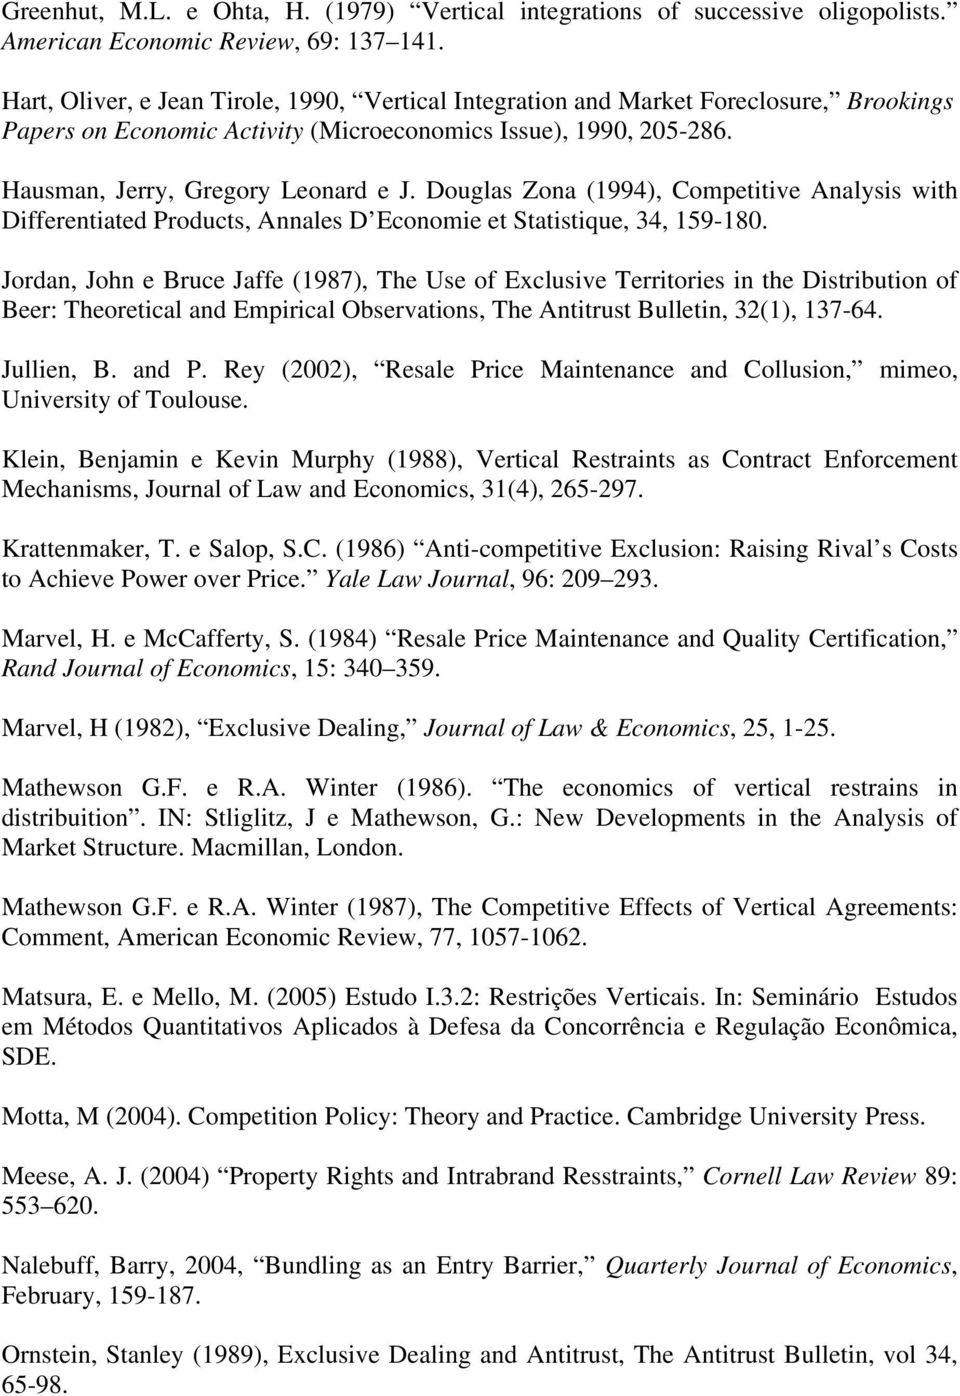 Douglas Zona (1994), Competitive Analysis with Differentiated Products, Annales D Economie et Statistique, 34, 159-180.